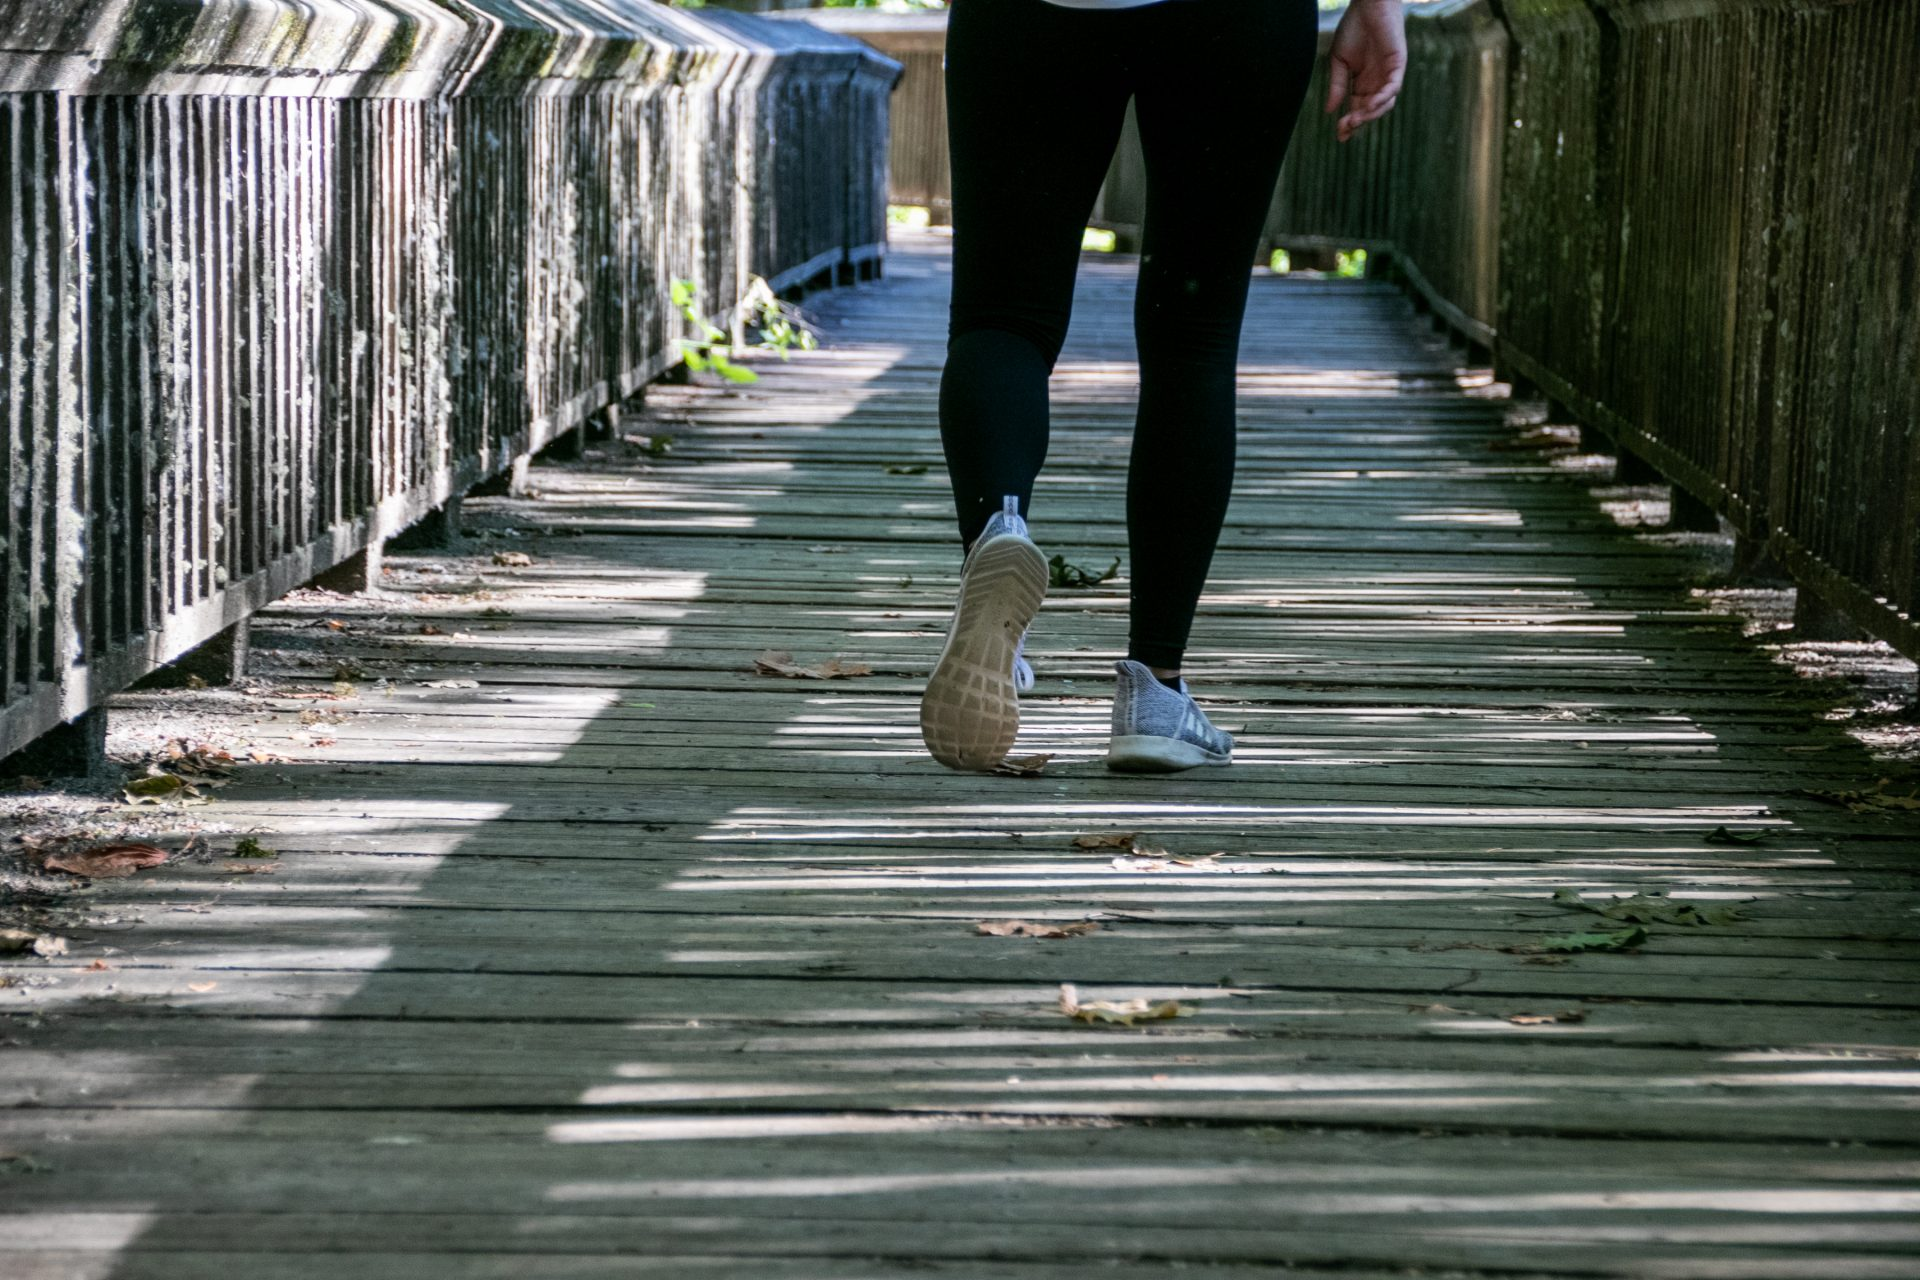 Legs Walking On Wooden Boardwalk